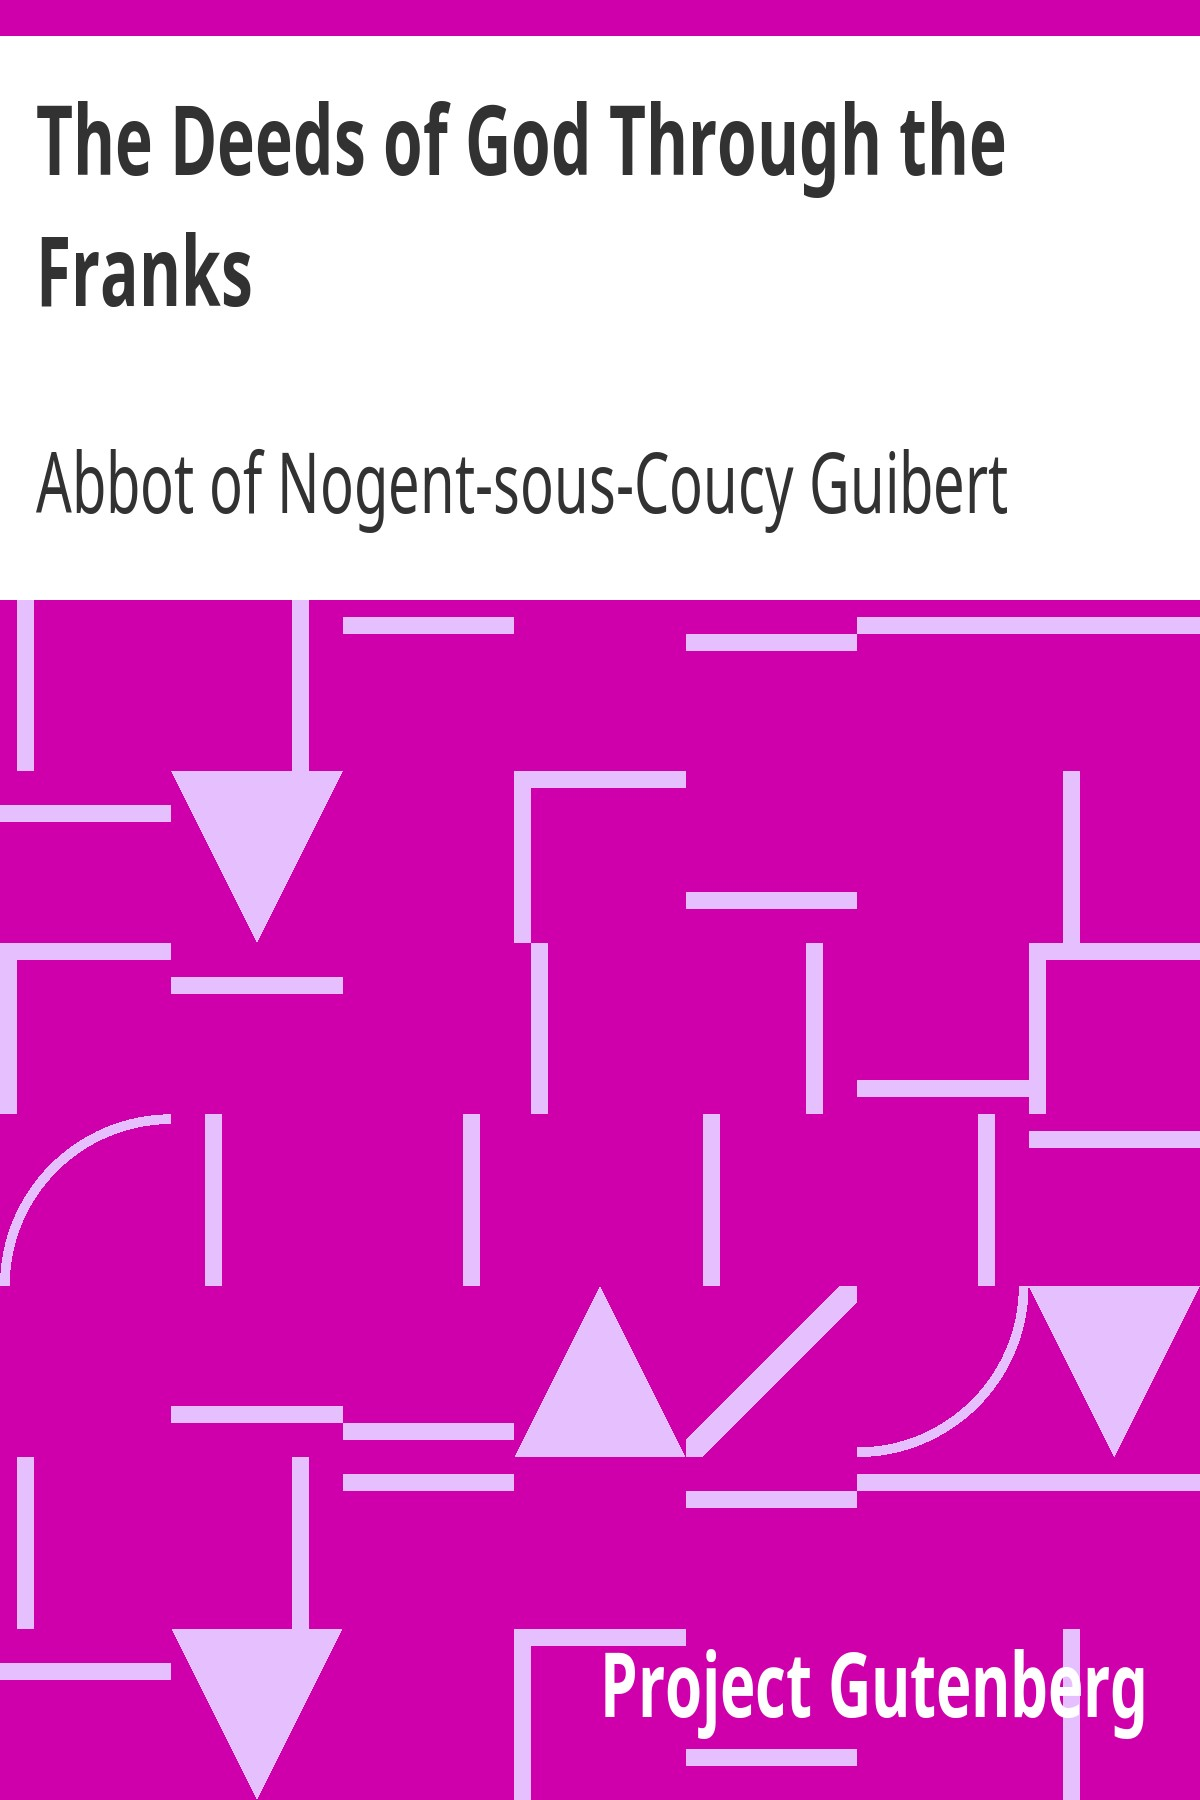 Guibert Abbot of Nogent-sous-Coucy The Deeds of God Through the Franks